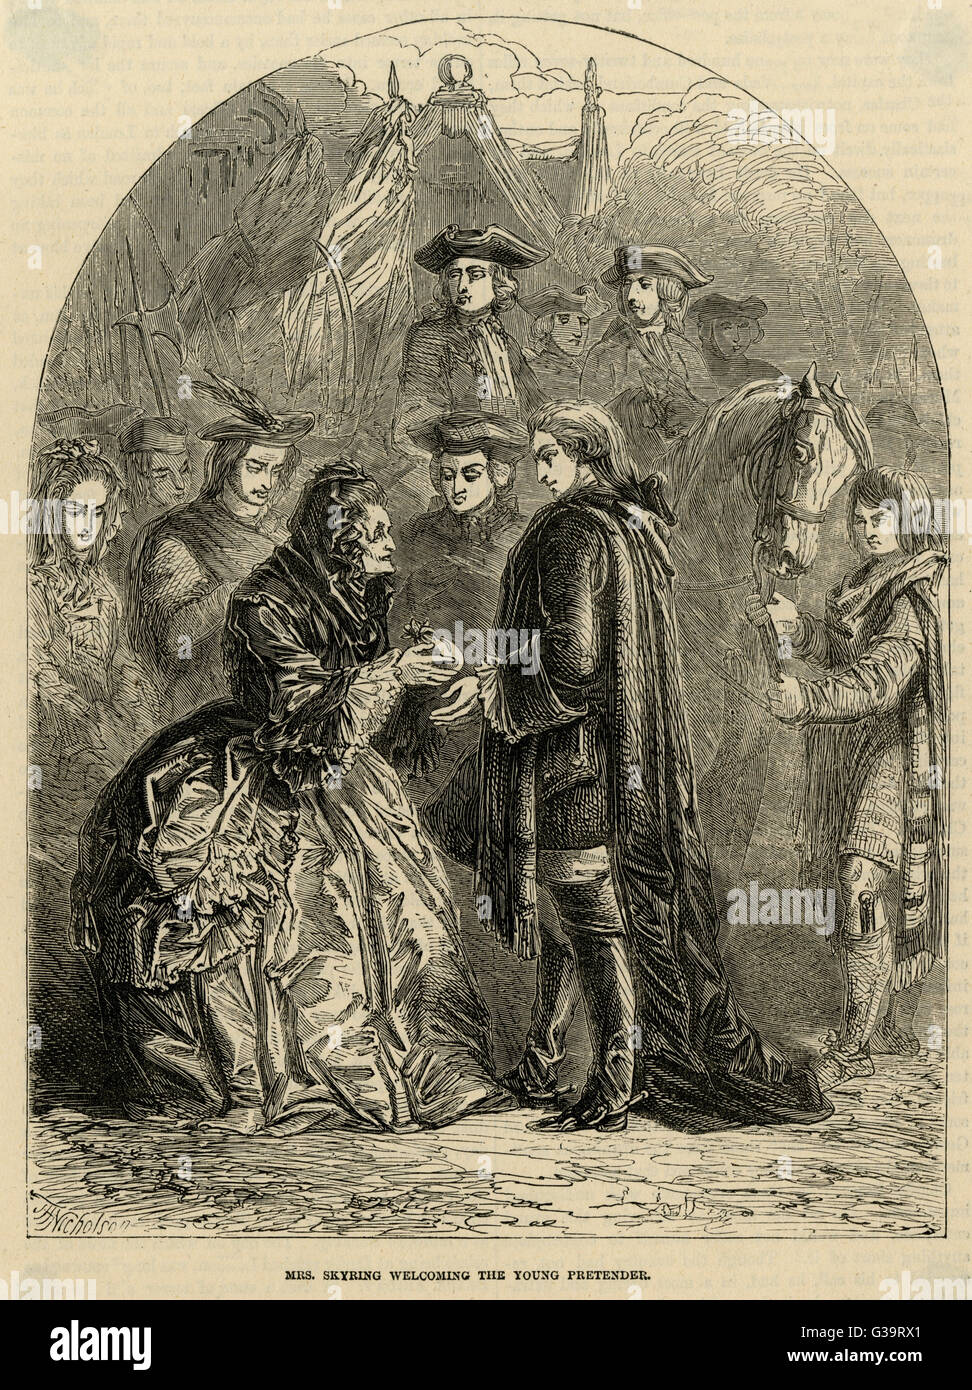 Mrs Skyring welcomes the Young  Pretender, Charles Stuart.         Date: 1745 - Stock Image